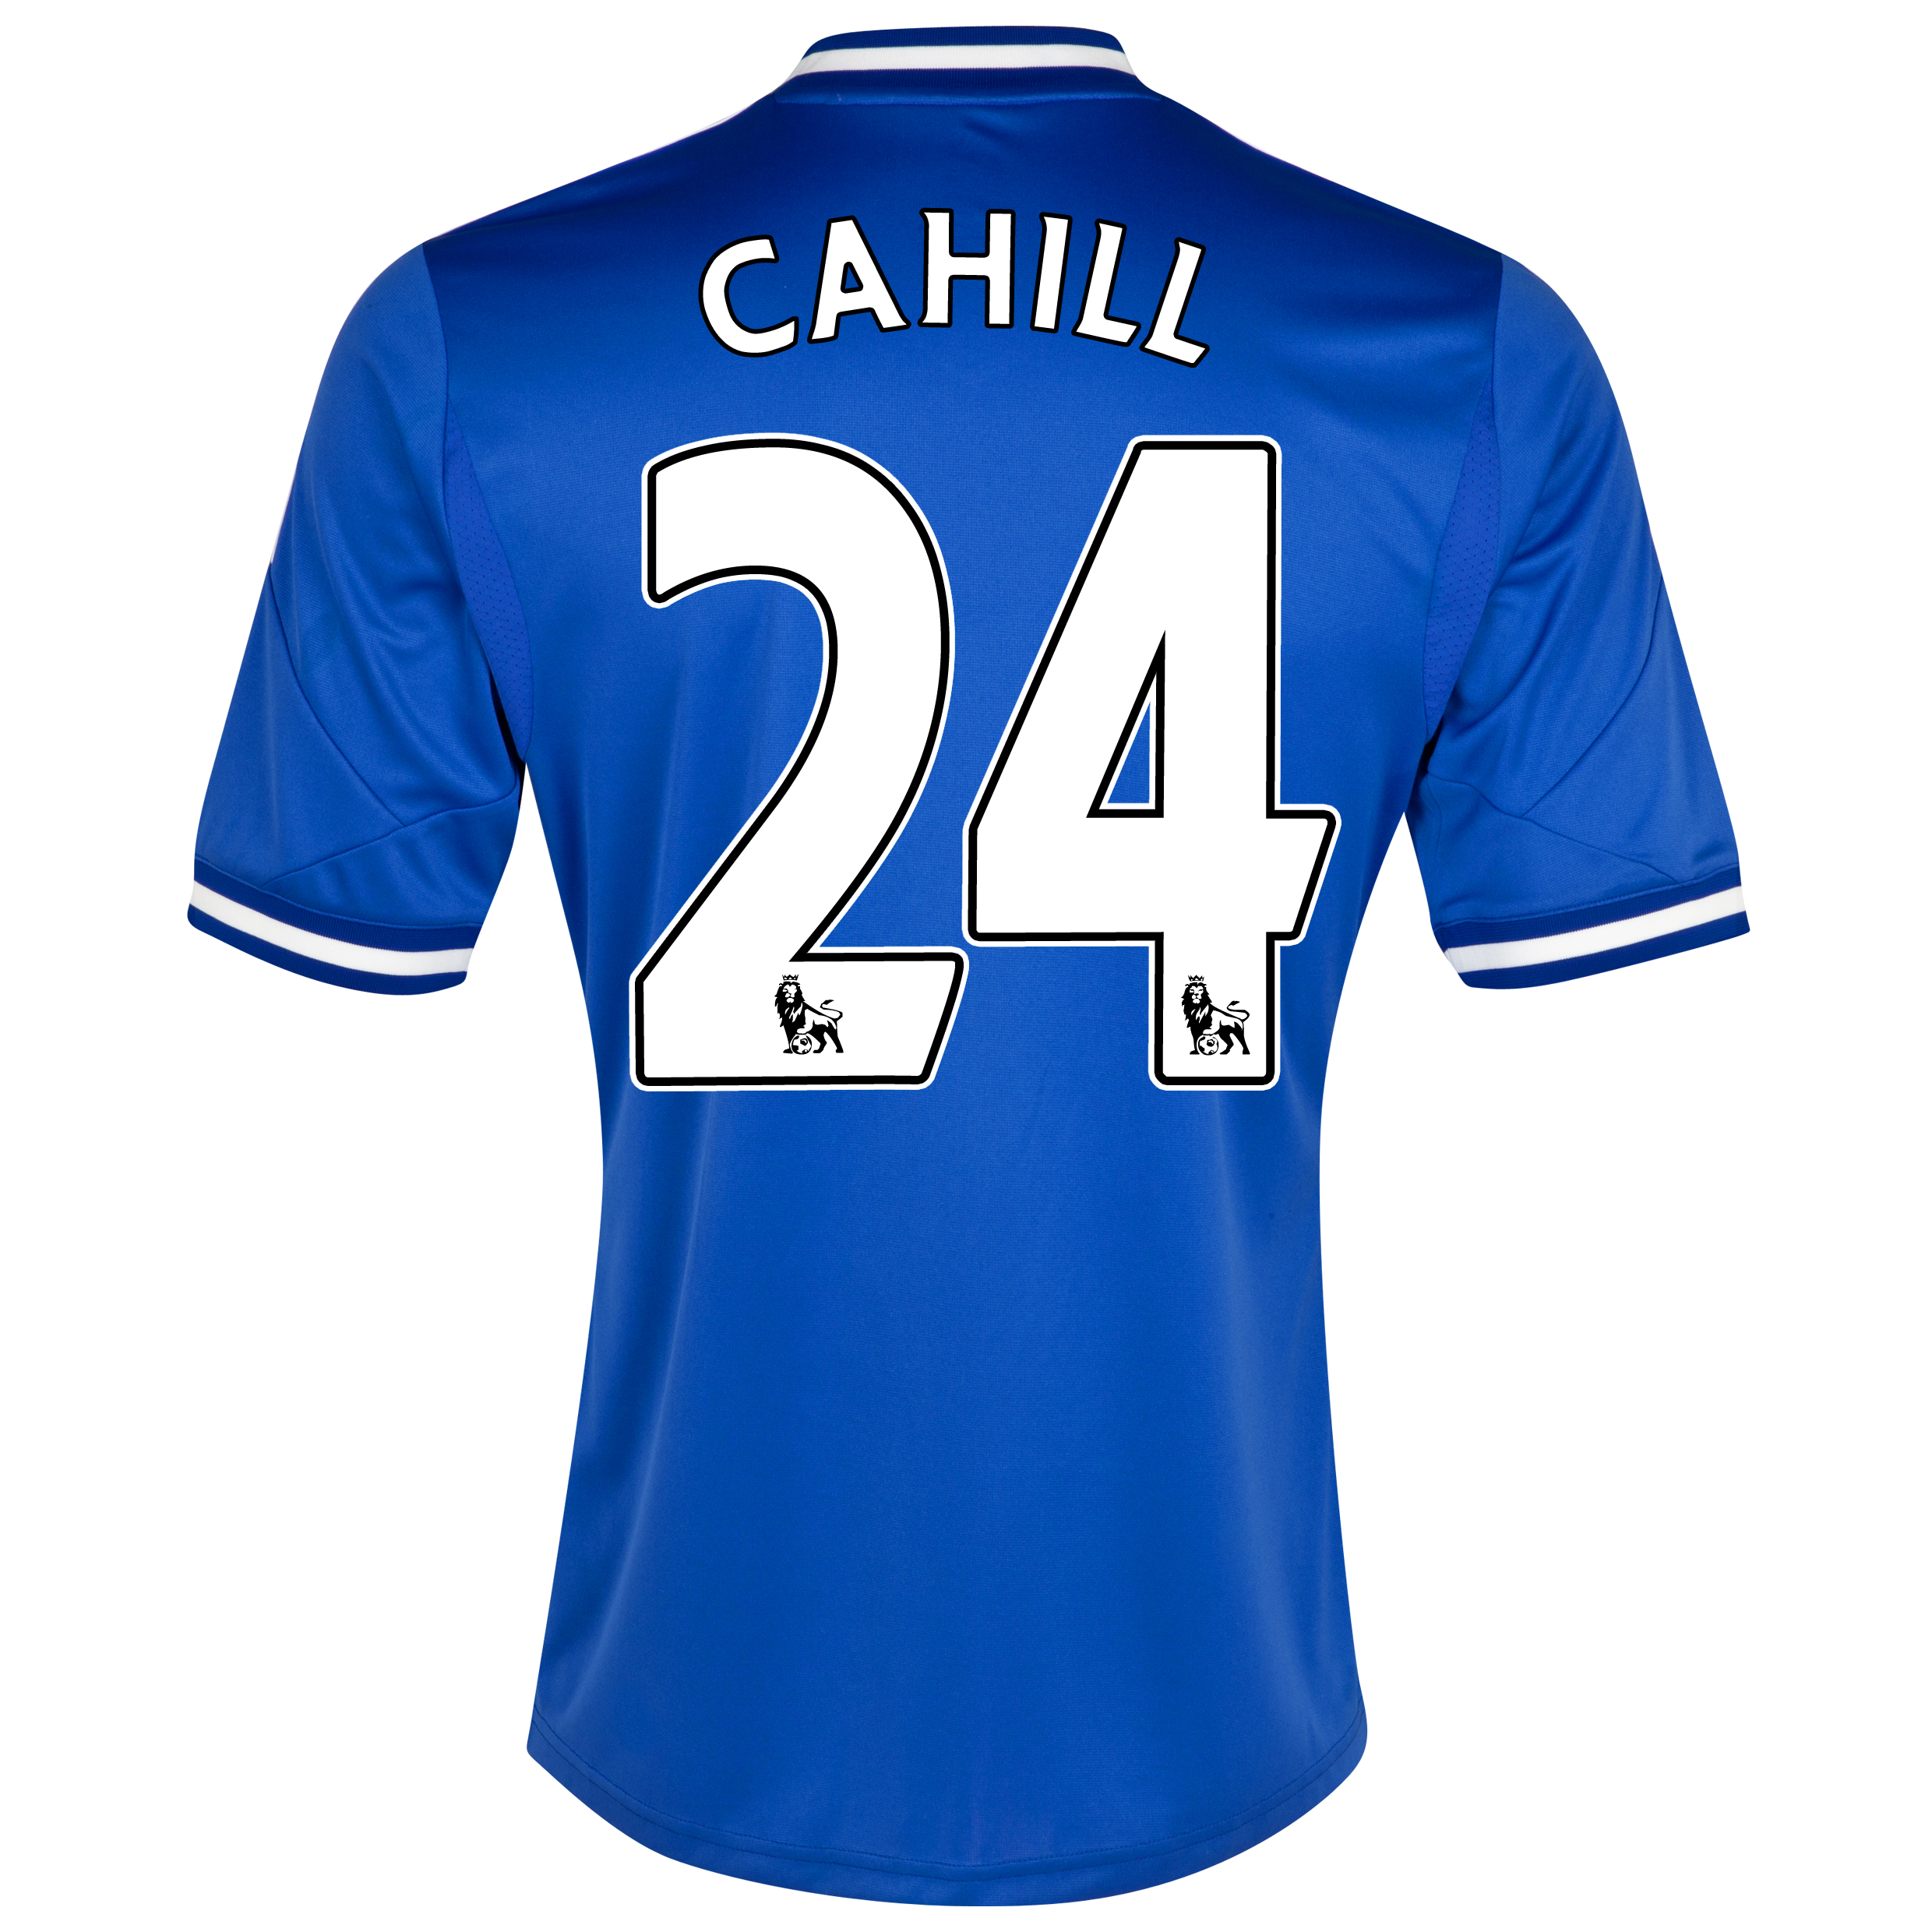 Chelsea Home Shirt 2013/14 - Kids with Cahill 24 printing